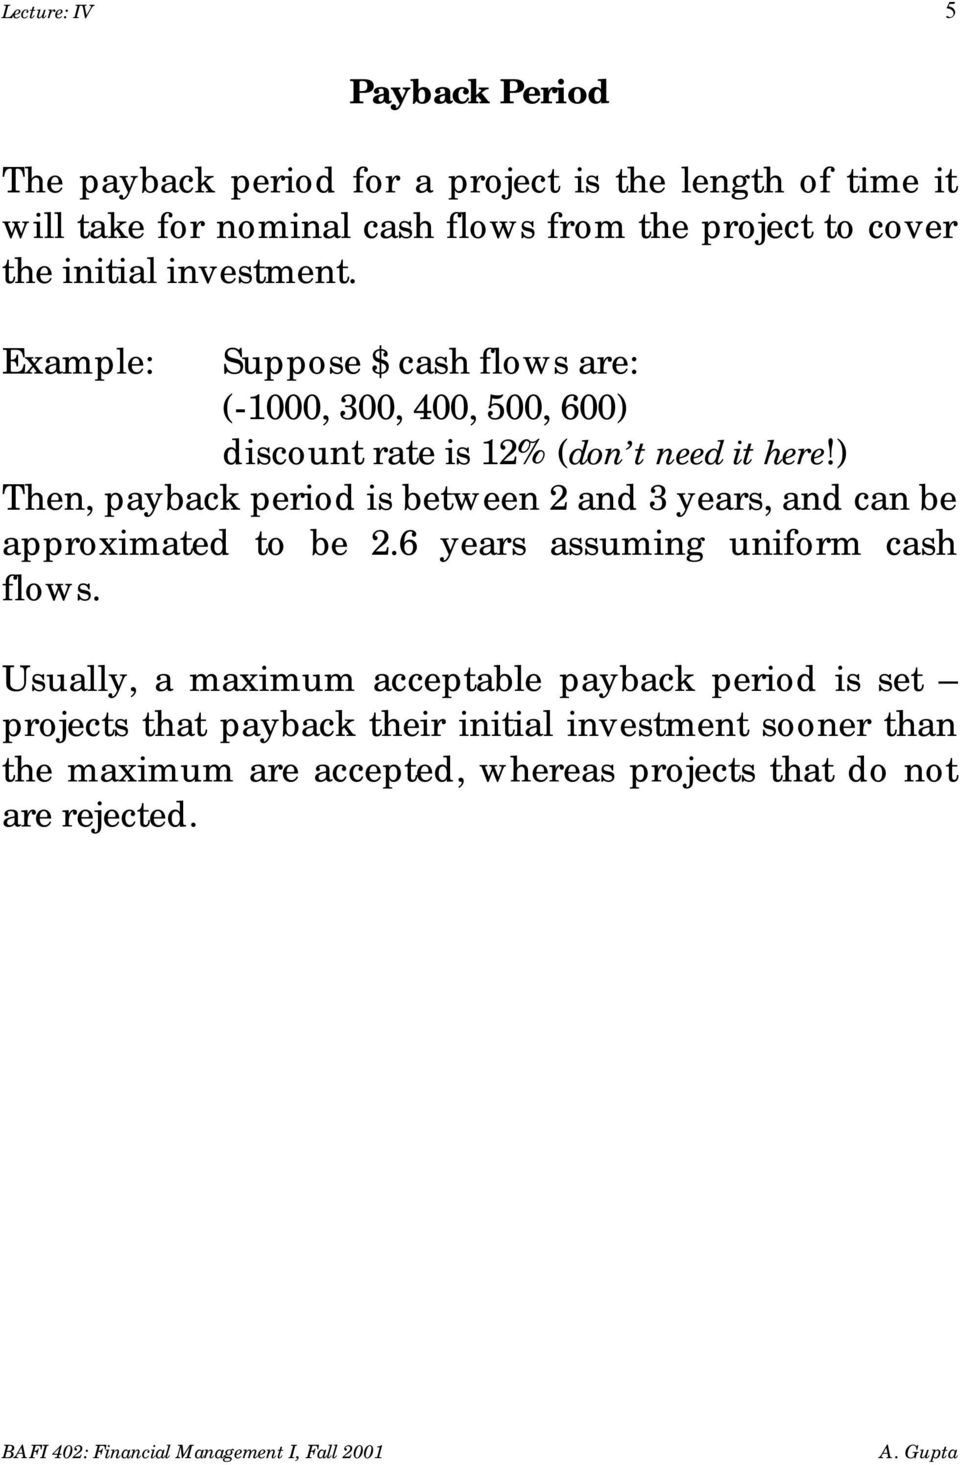 ) Then, payback period is between 2 and 3 years, and can be approximated to be 2.6 years assuming uniform cash flows.